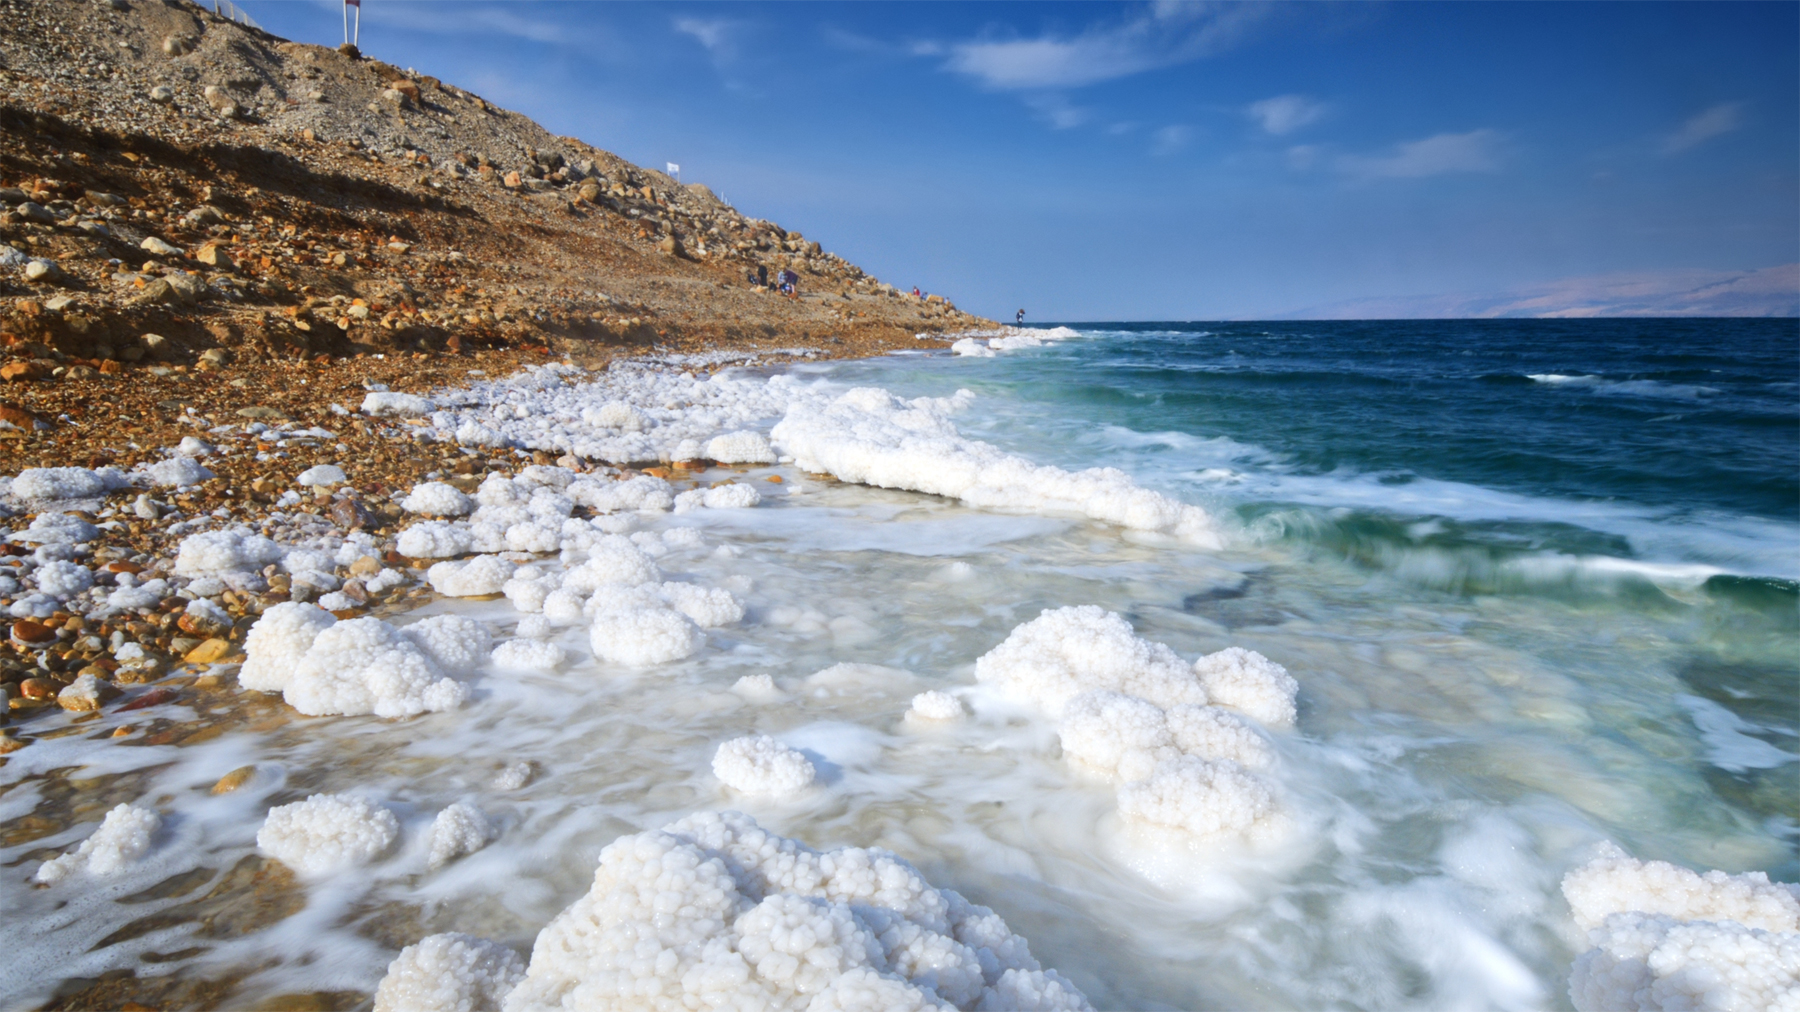 The famously salty banks of the Dead Sea.